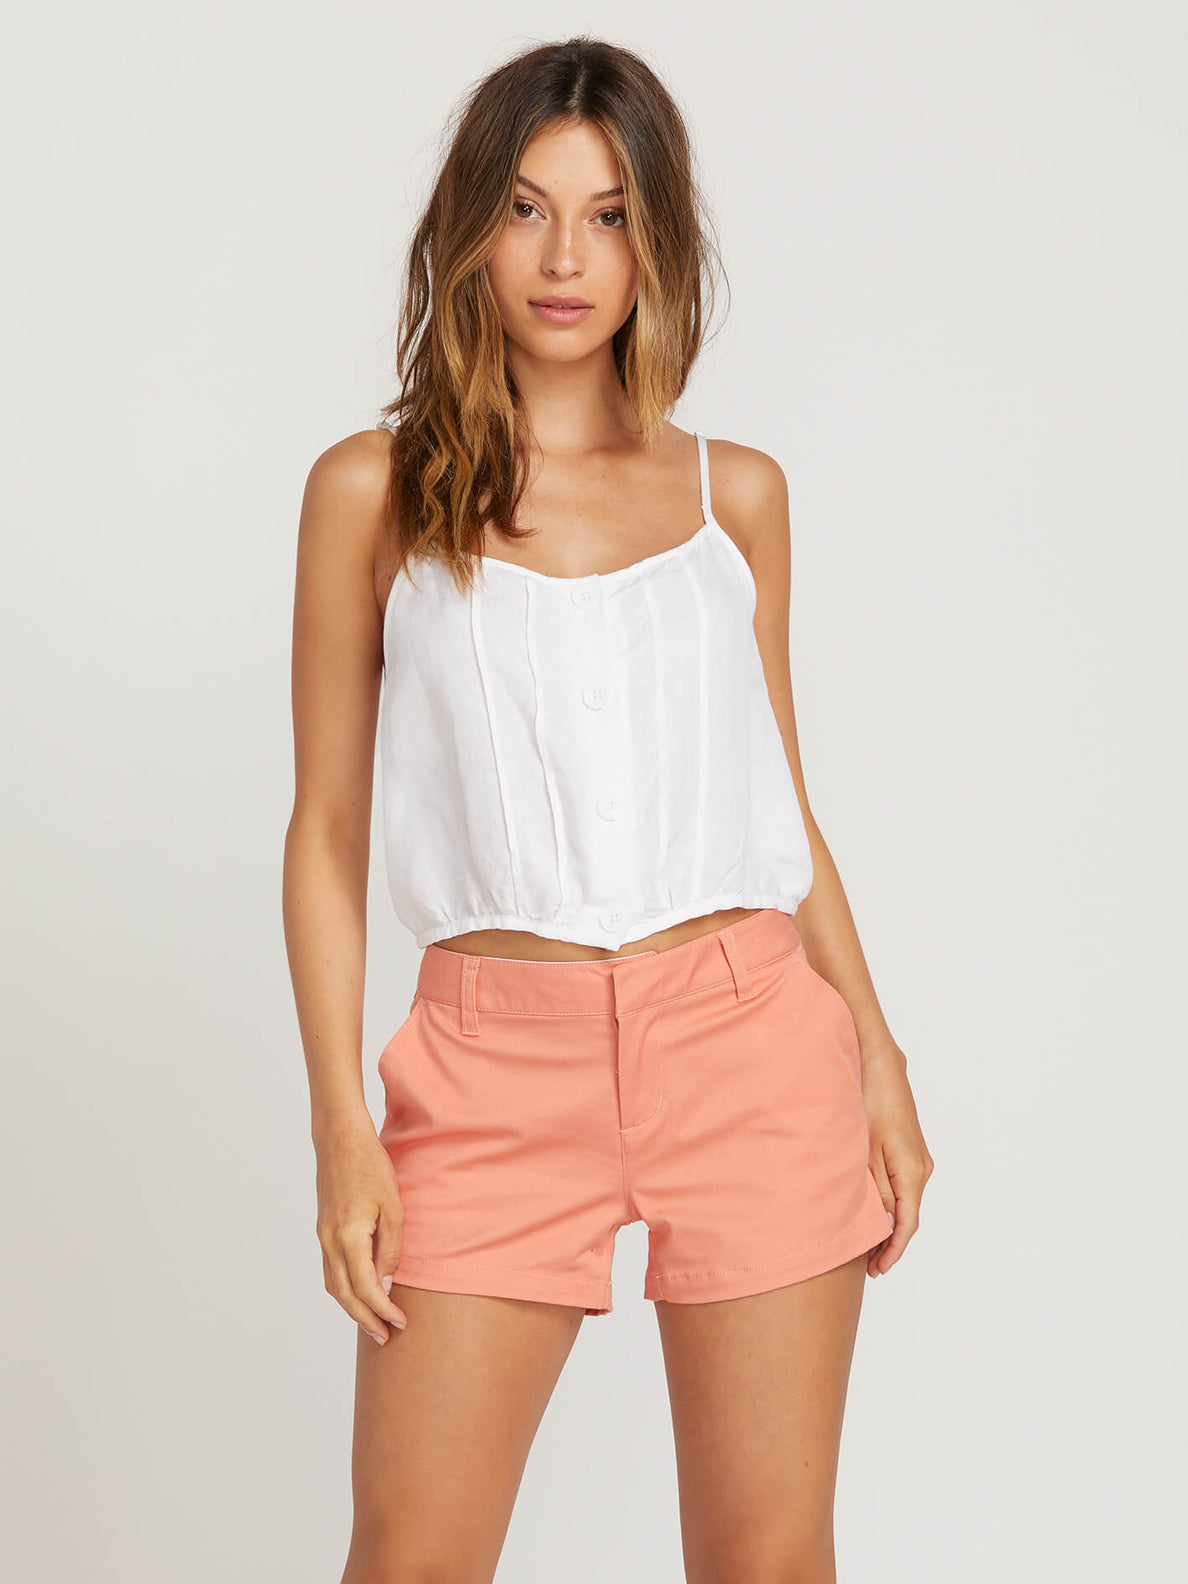 Frochickie Shorts In Terra Cotta, Front View